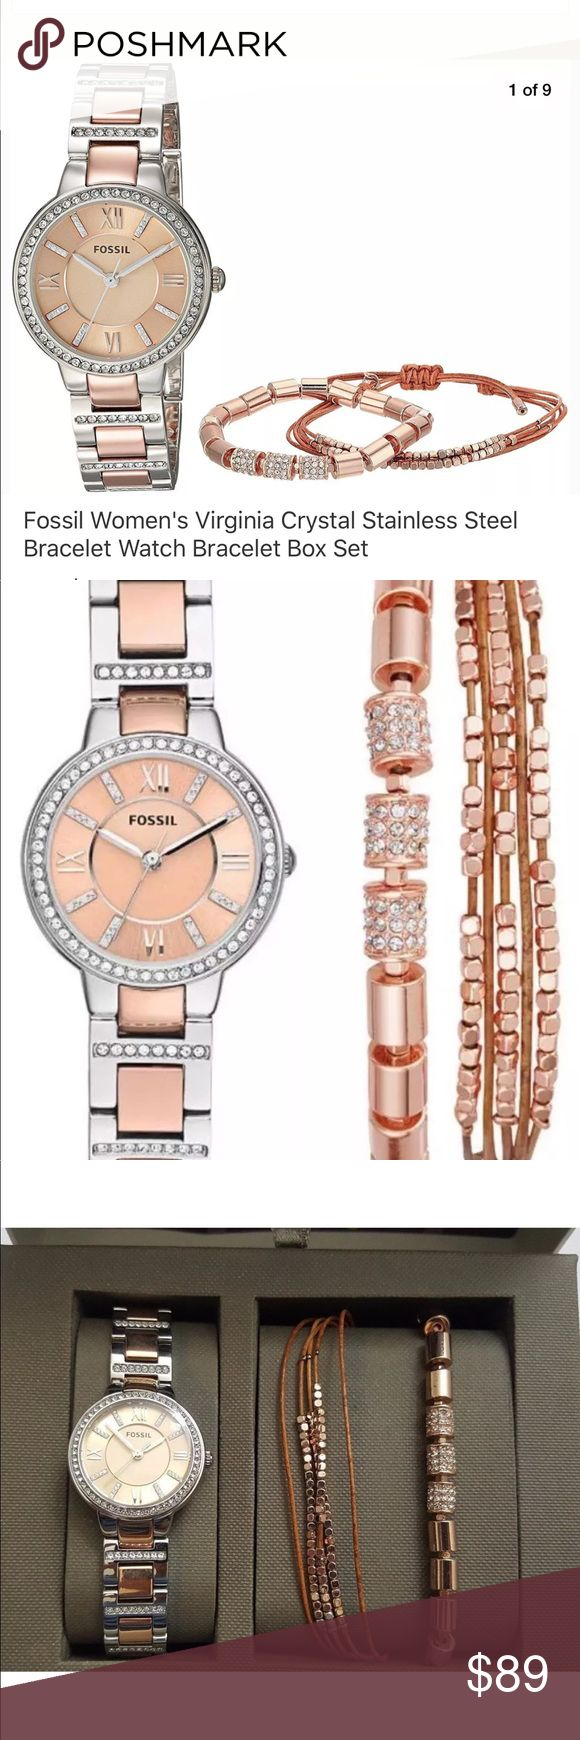 Fossil watch with 2 brackets silver/ rose gold FOSSIL VIRGINIA BOX SET...Silver-tone and rose gold-tone stainless steel bracelet with crystal accents Round case, 30mm, with crystal-set bezel Rose gold-tone dial with crystal markers, silver-tone Roman numerals, three hands and Fossil logo Quartz movement 3 ATM water resistance Round case, 30mm, with crystal-set bezel Rose gold-tone dial with crystal markers, silver-tone Roman numerals, three hands and Fossil logo 2 coordinating rose gold…